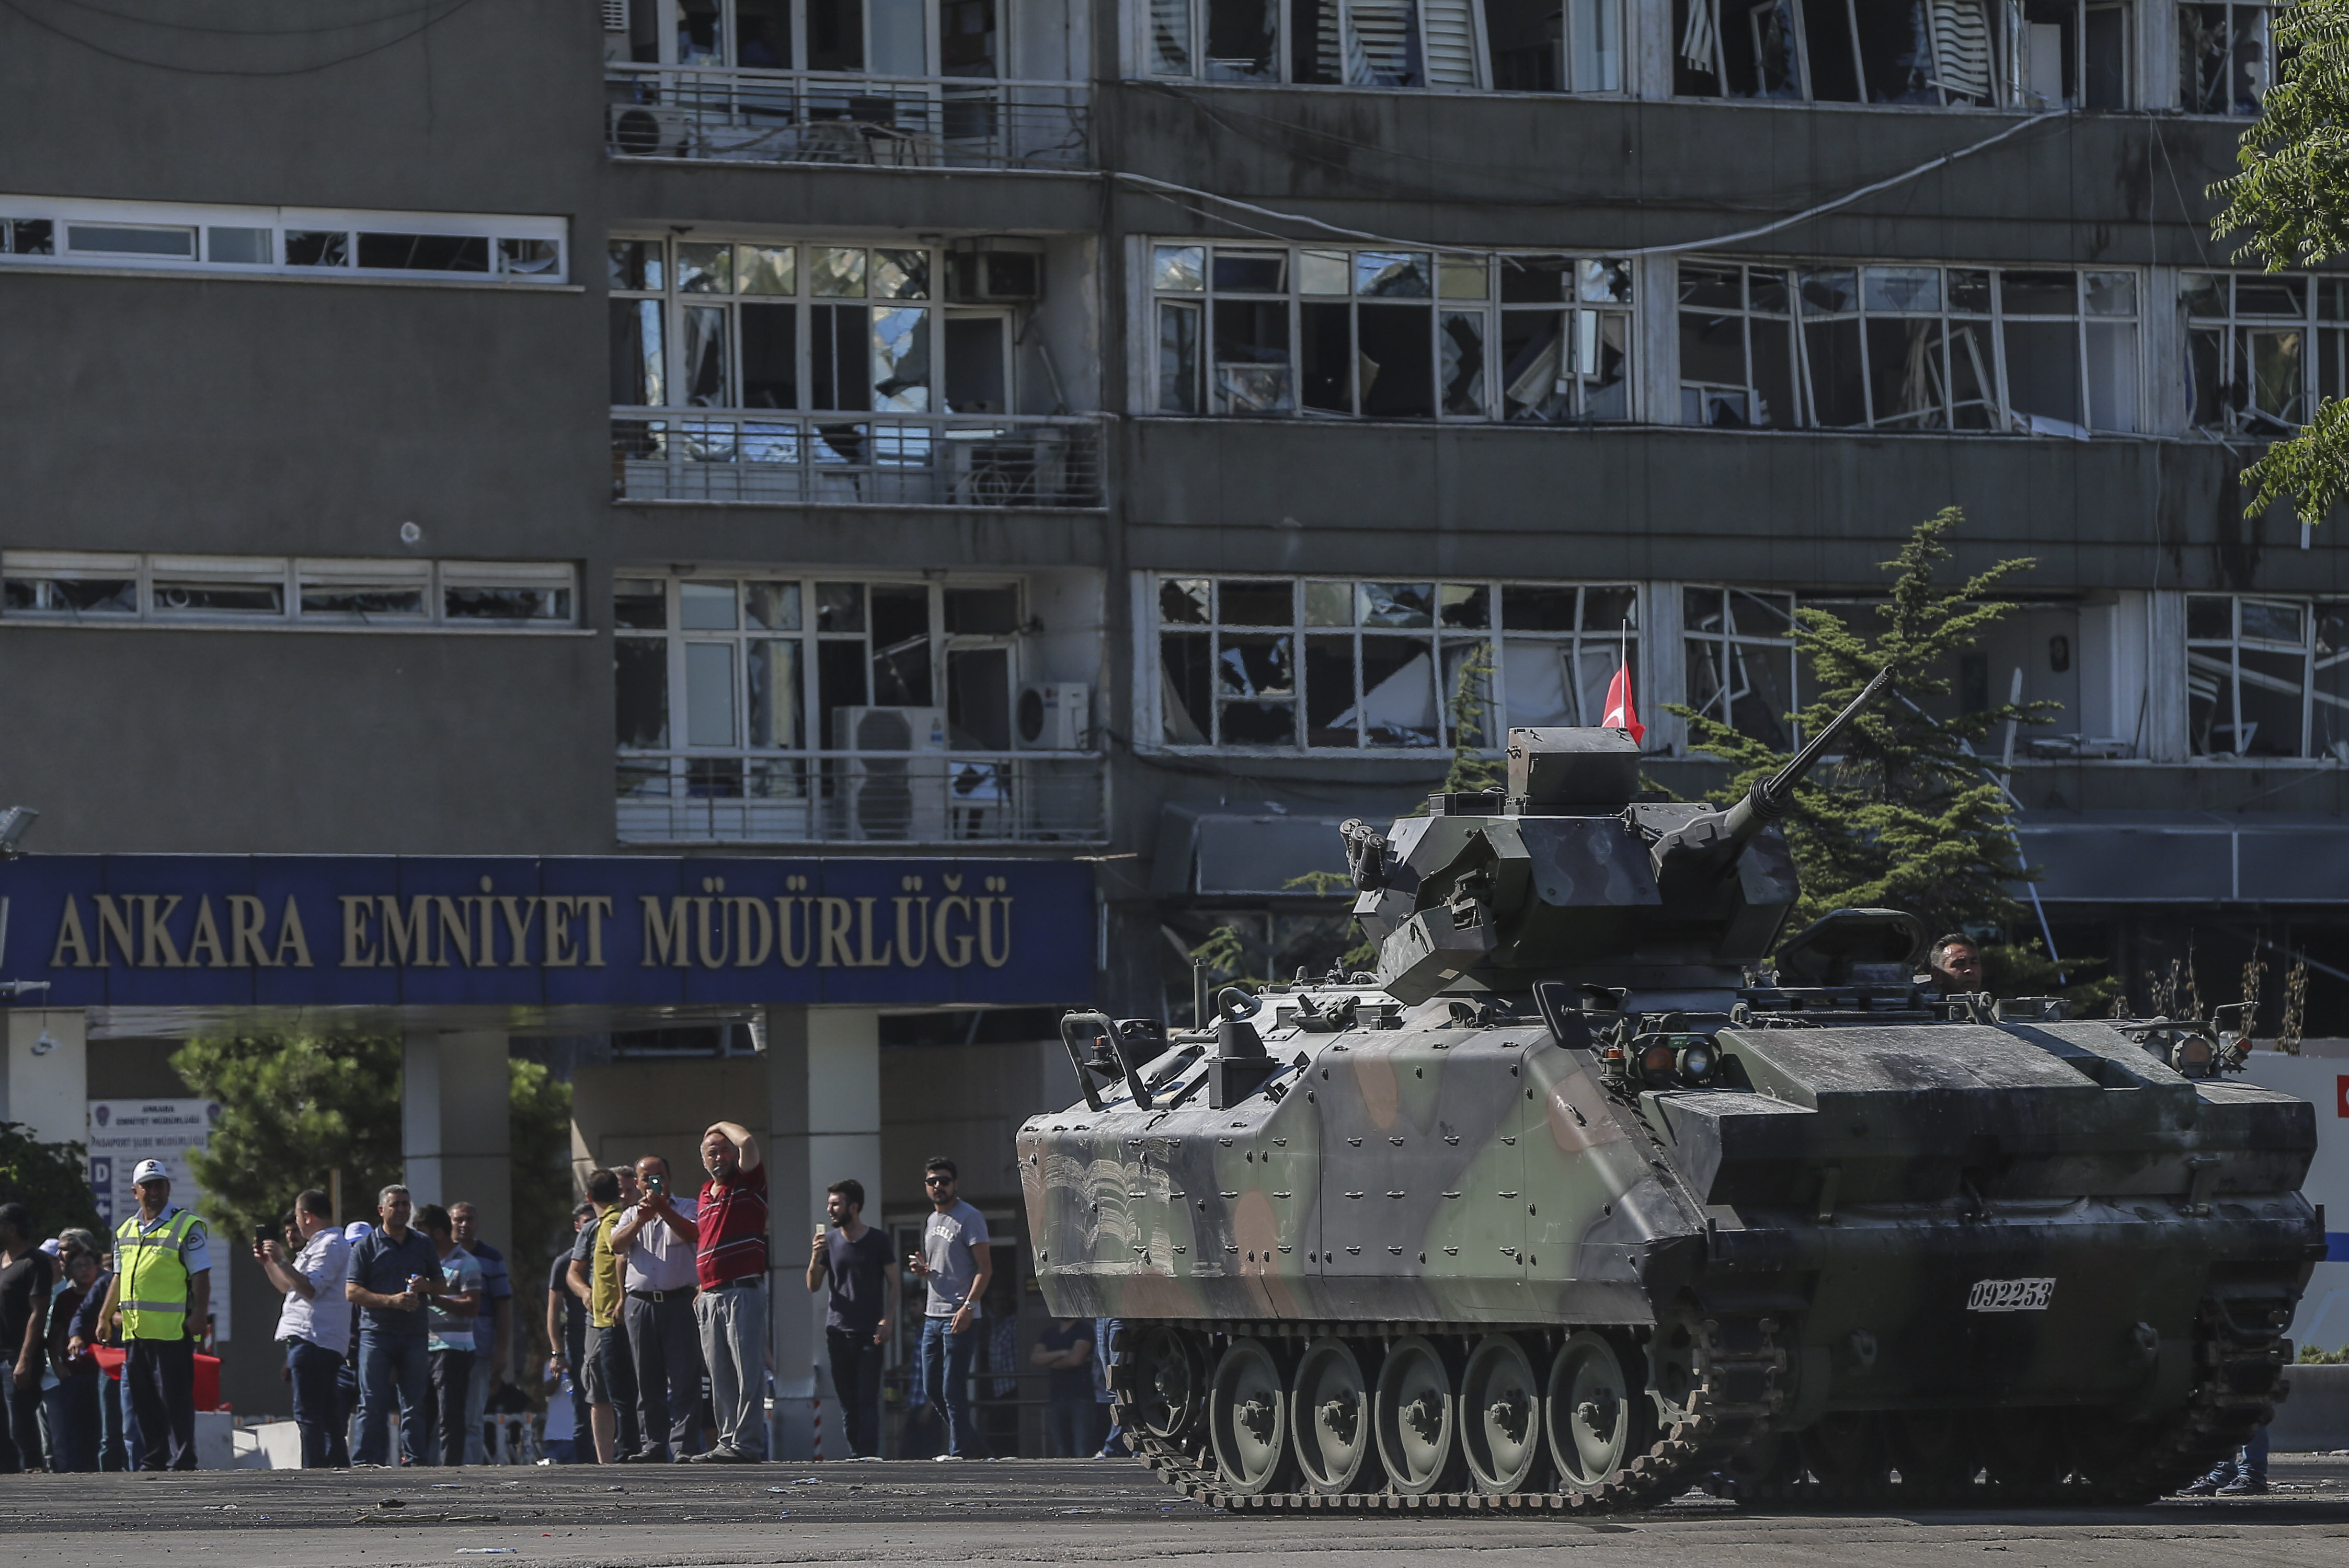 6After the resistance, which continued until 5:13 a.m., six tanks under the control of coup soldiers were seized and the soldiers were taken into custody.